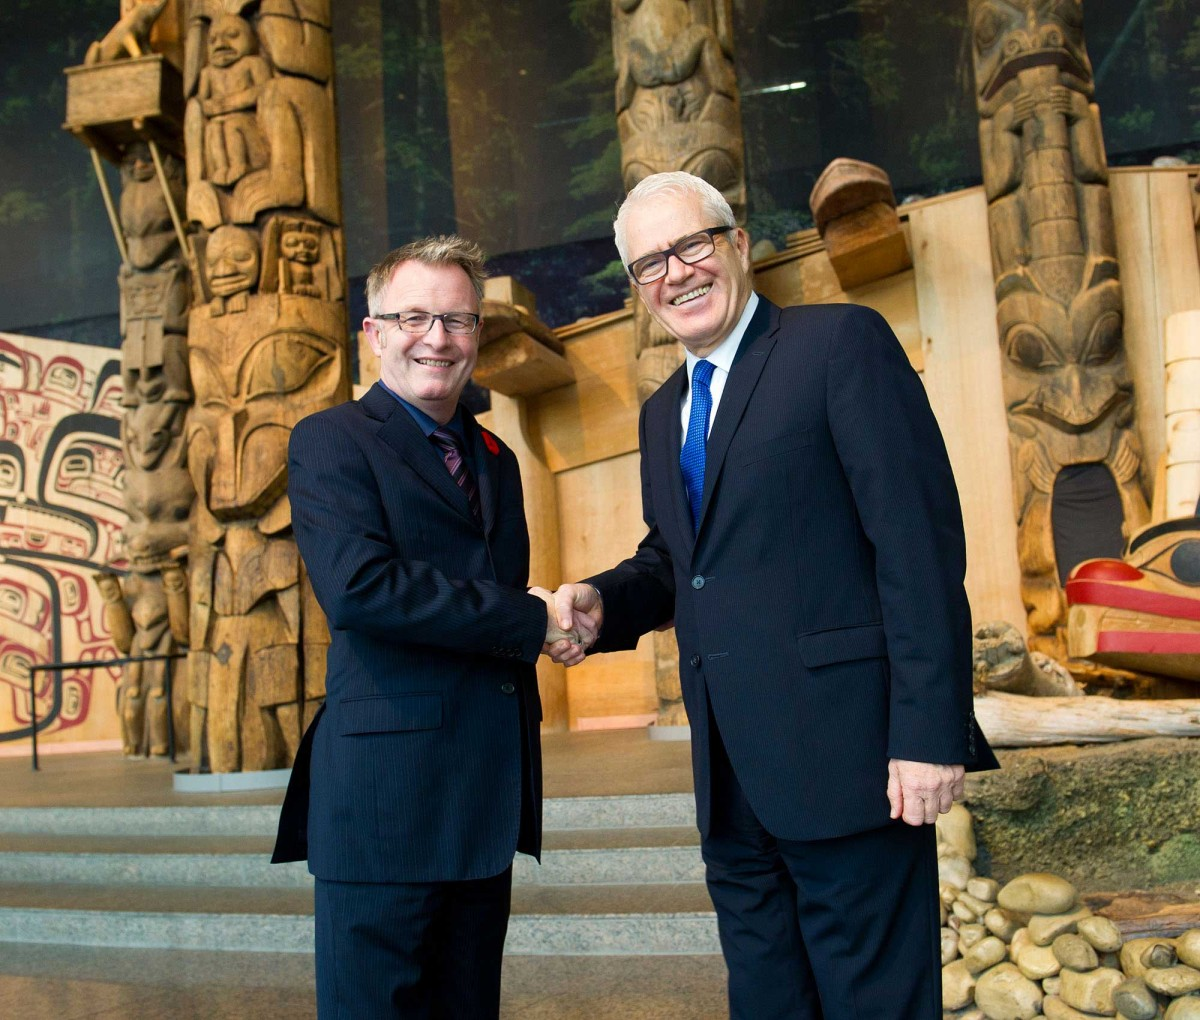 Mark O'Neill, President and CEO of the Canadian Museum of Civilization Corporation with His Excellency Eleftherios Anghelopoulos, Ambassador of Greece to Canada. Photo: Marie-Andrée Blais, Canadian Museum of Civilization Corporation.